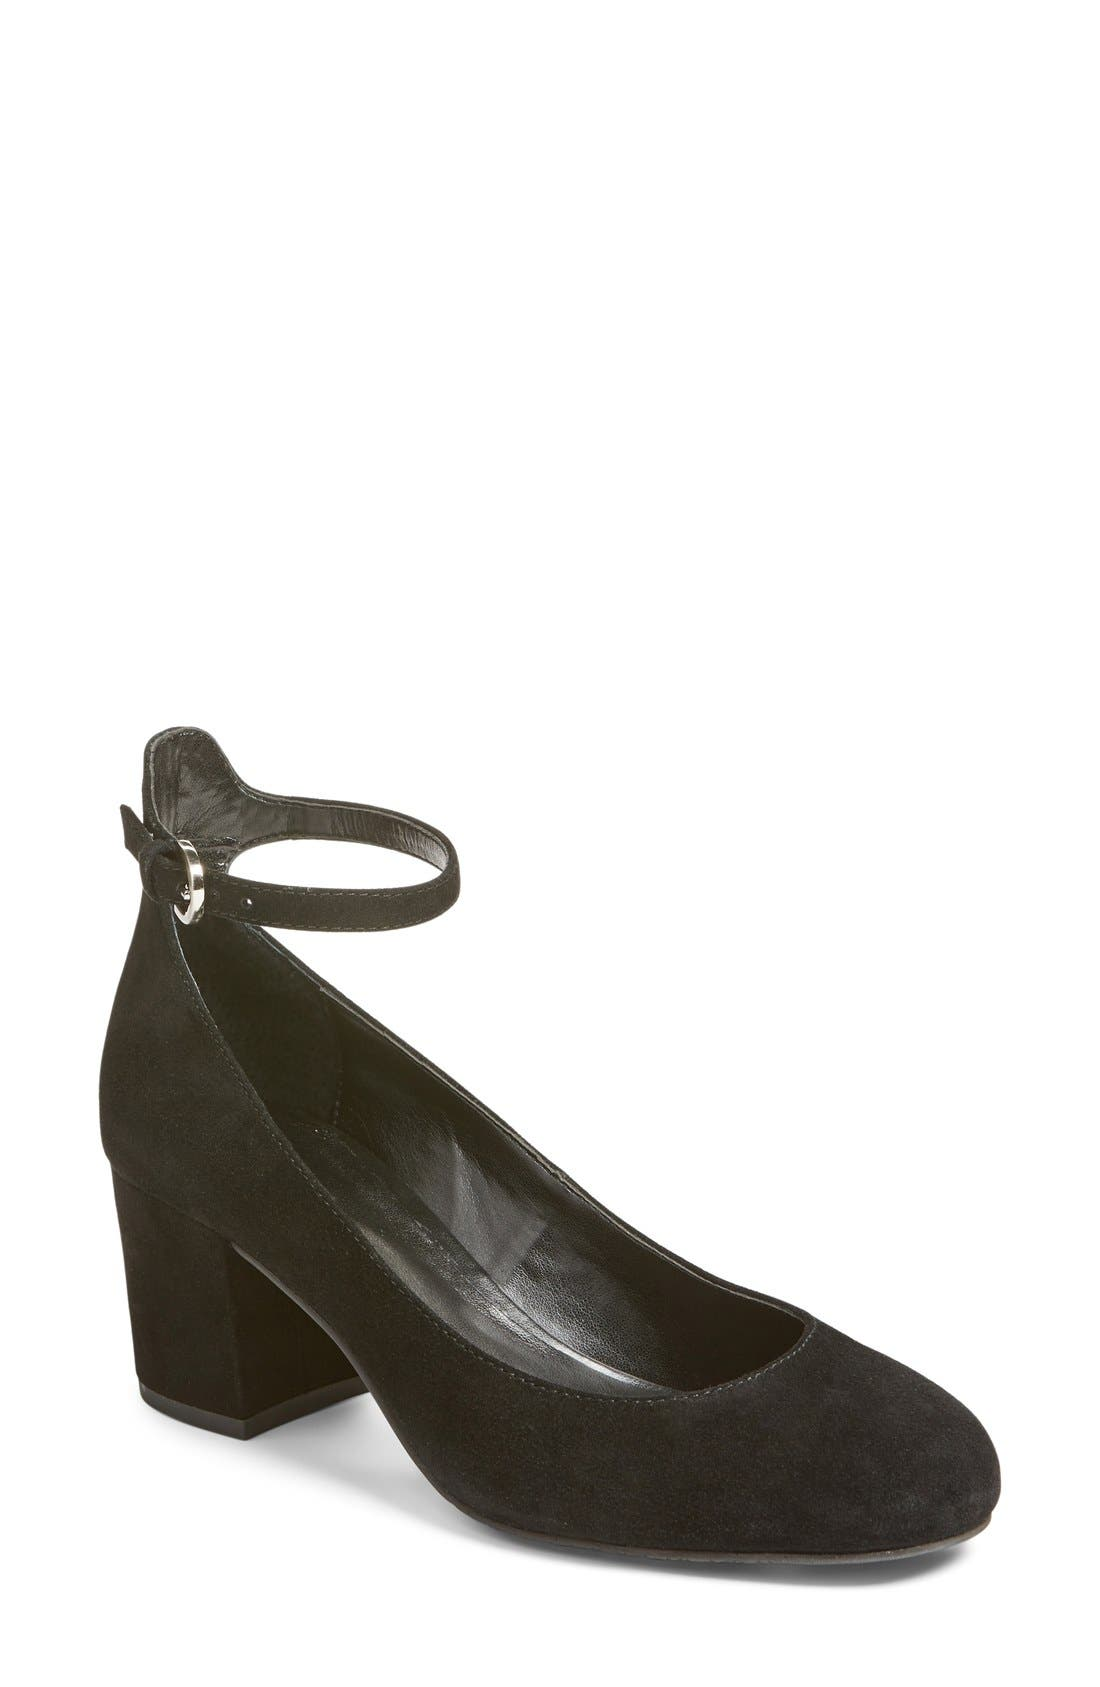 Ankle Strap Block Heel Pump,                             Main thumbnail 1, color,                             Black Suede